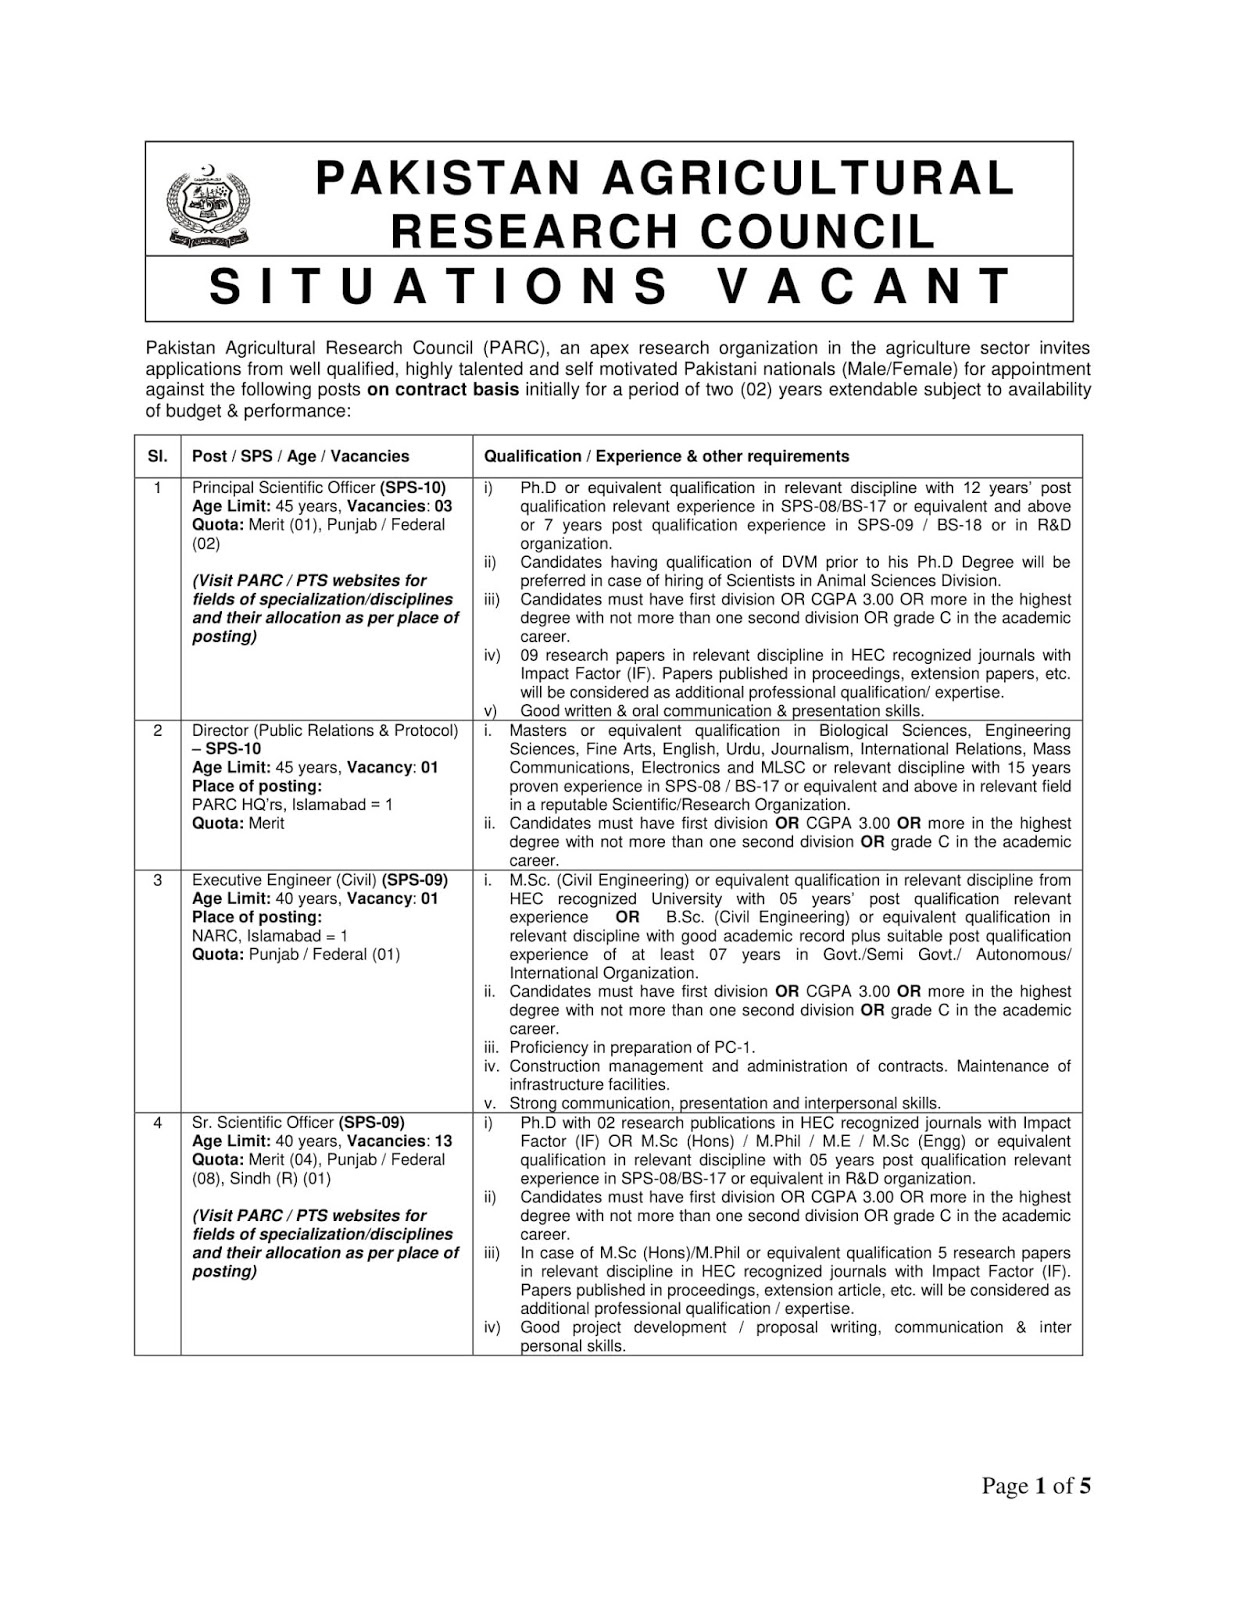 Pakistan Agriculture Research Council (PARC) (288) Latest jobs 2018